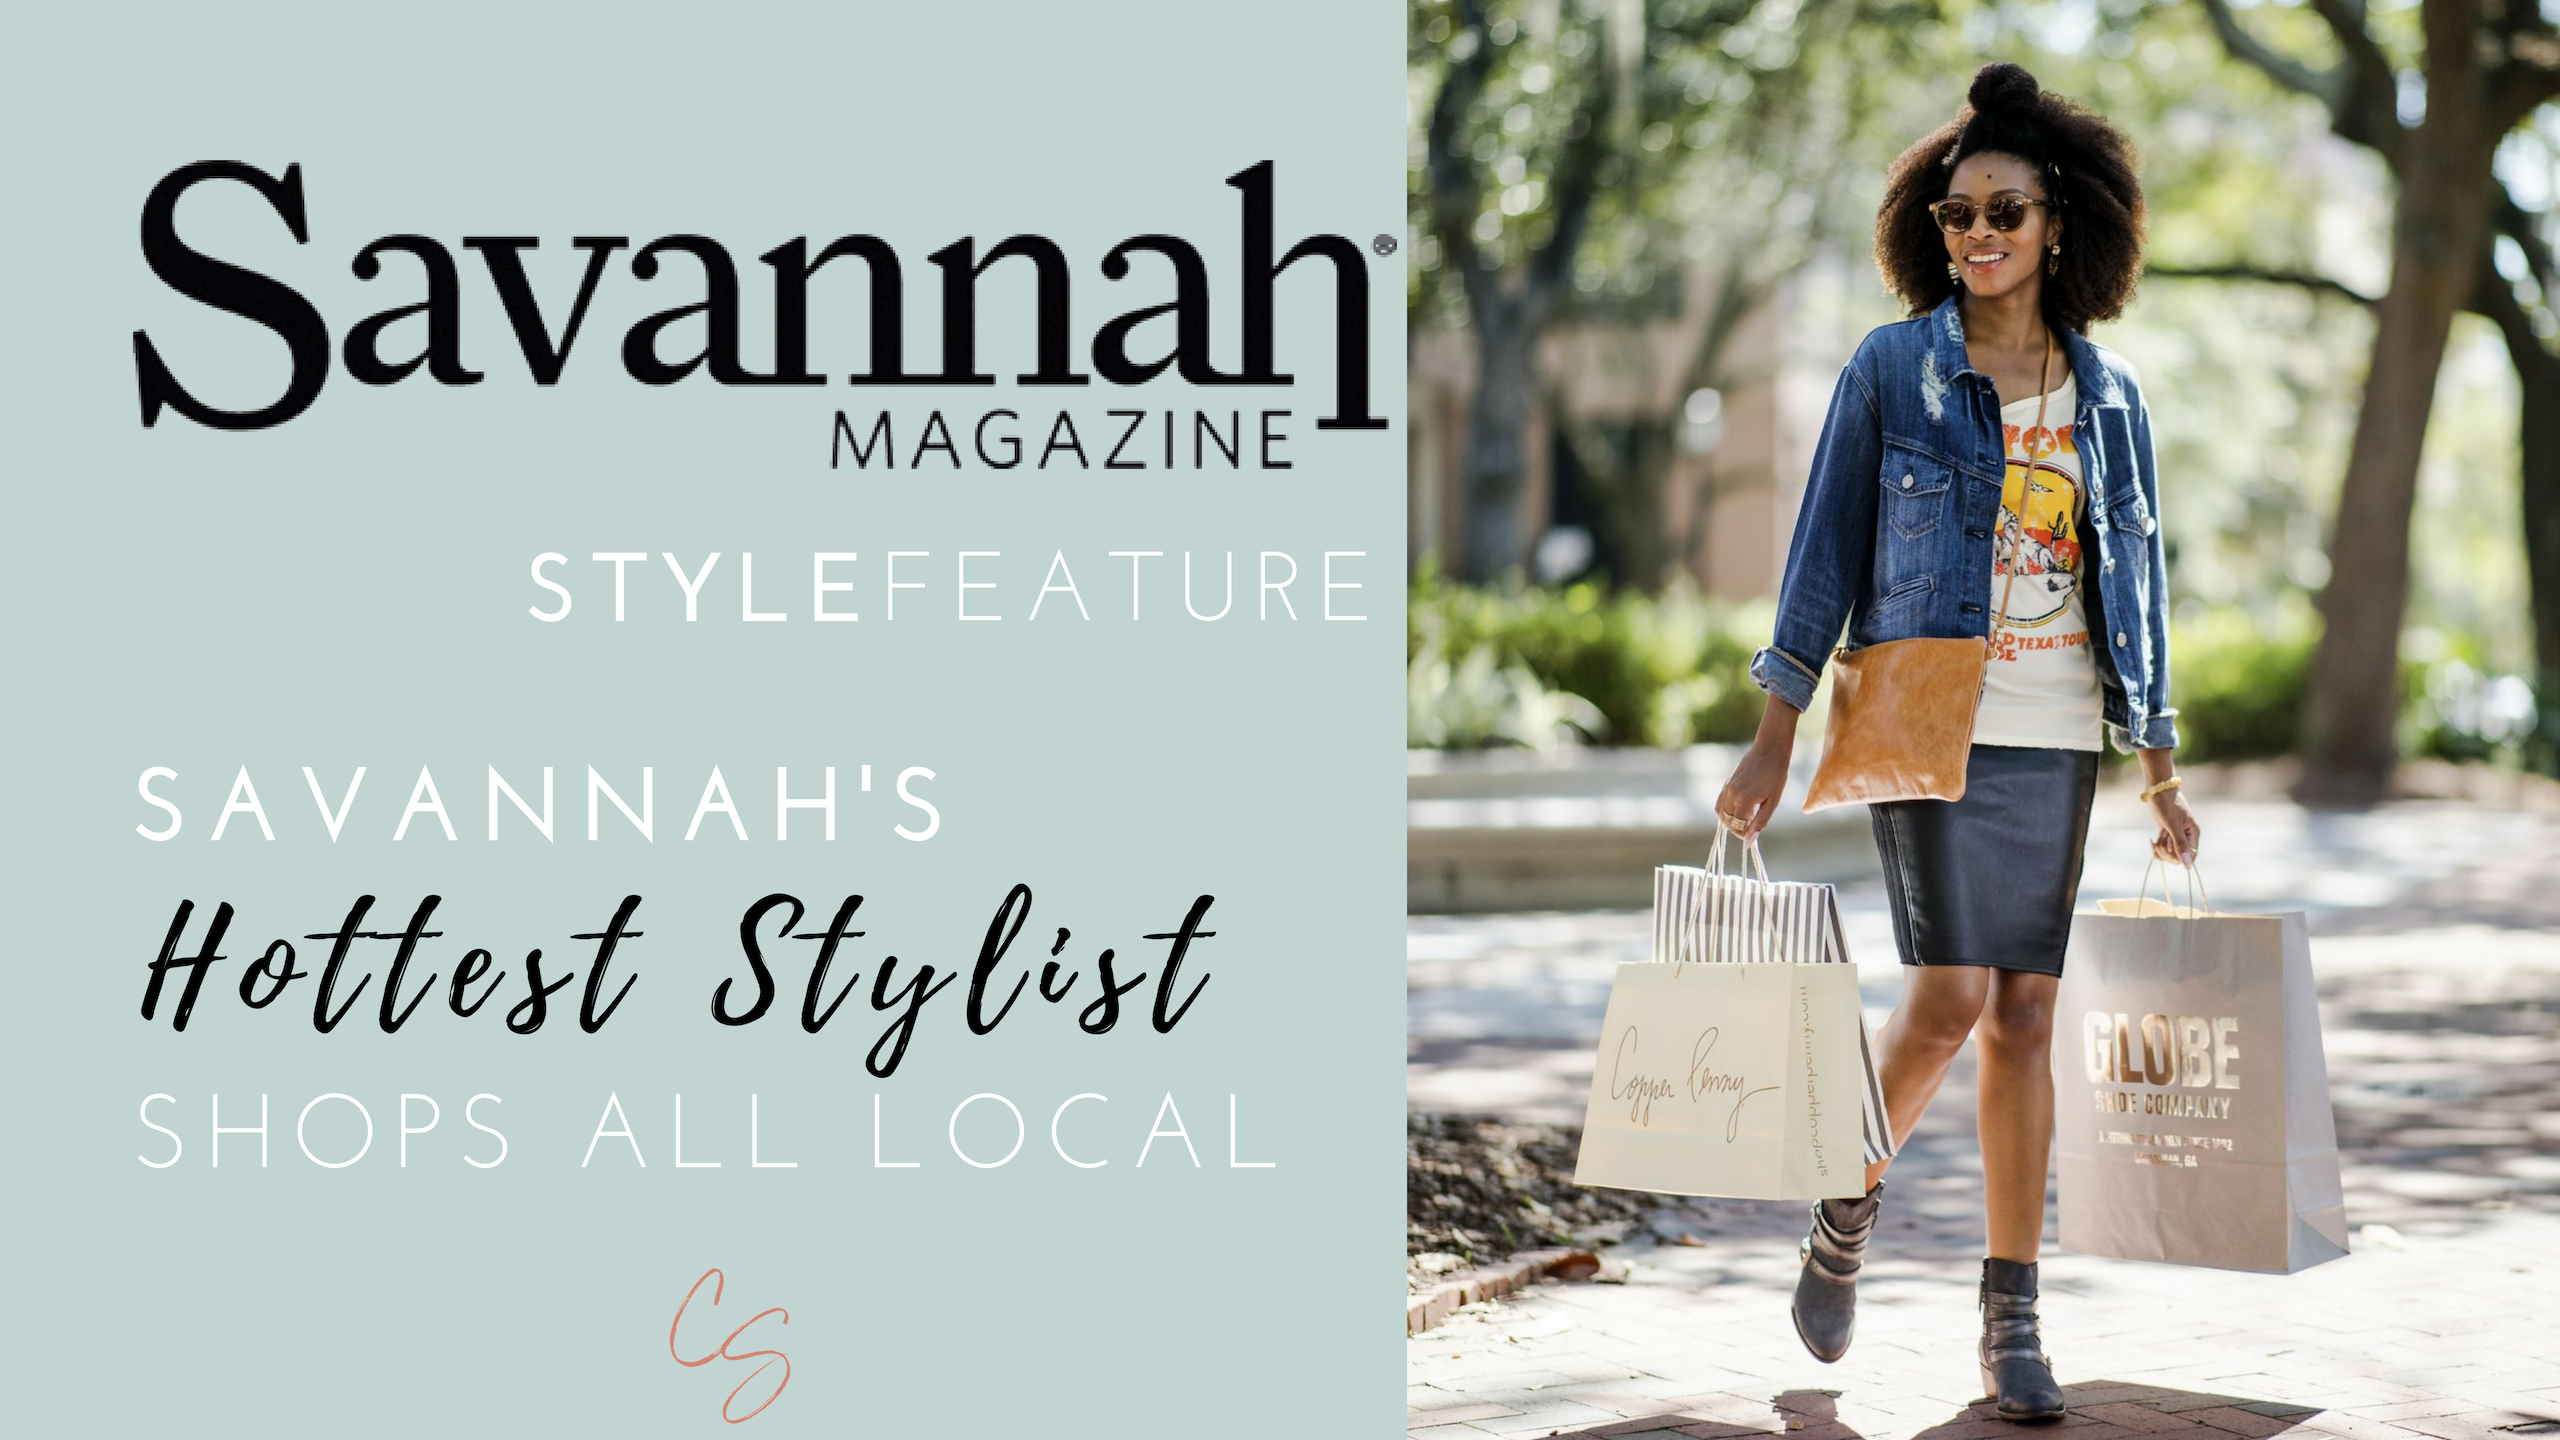 SAVANNAH MAGAZINE